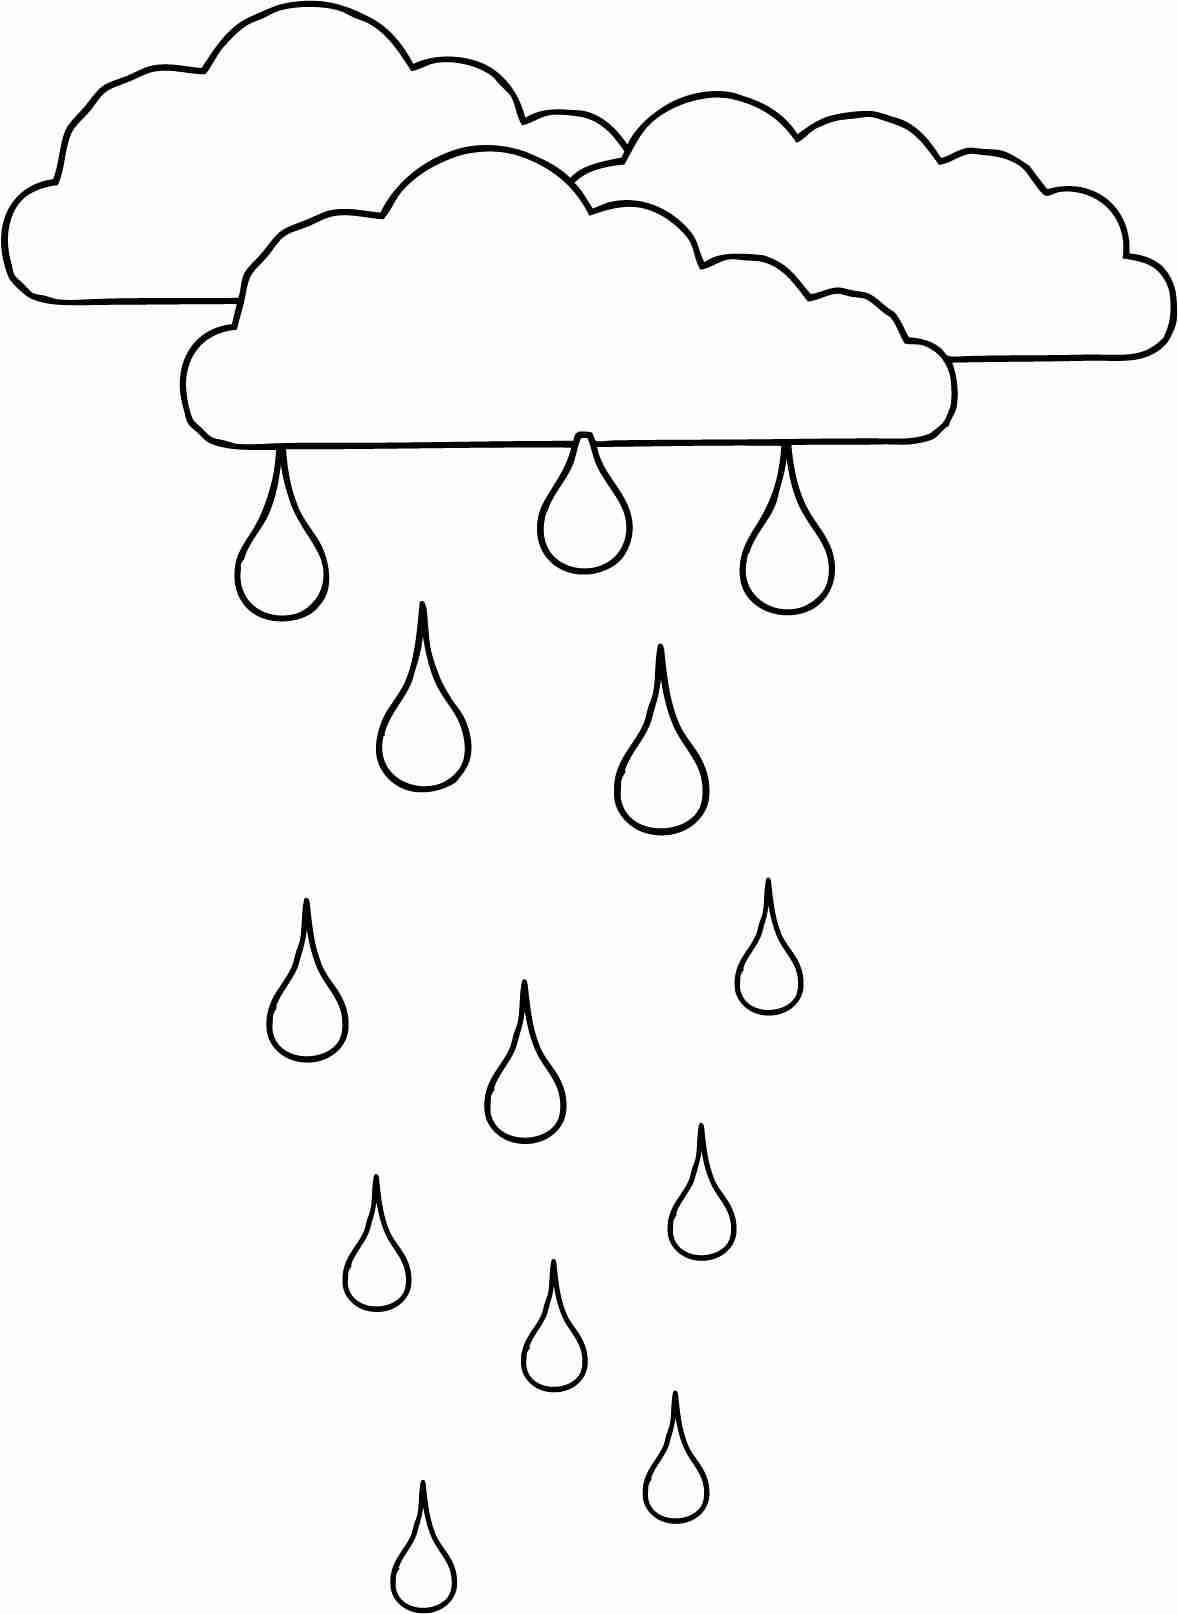 raindrop coloring pages raindrop coloring page educative printable pages coloring raindrop